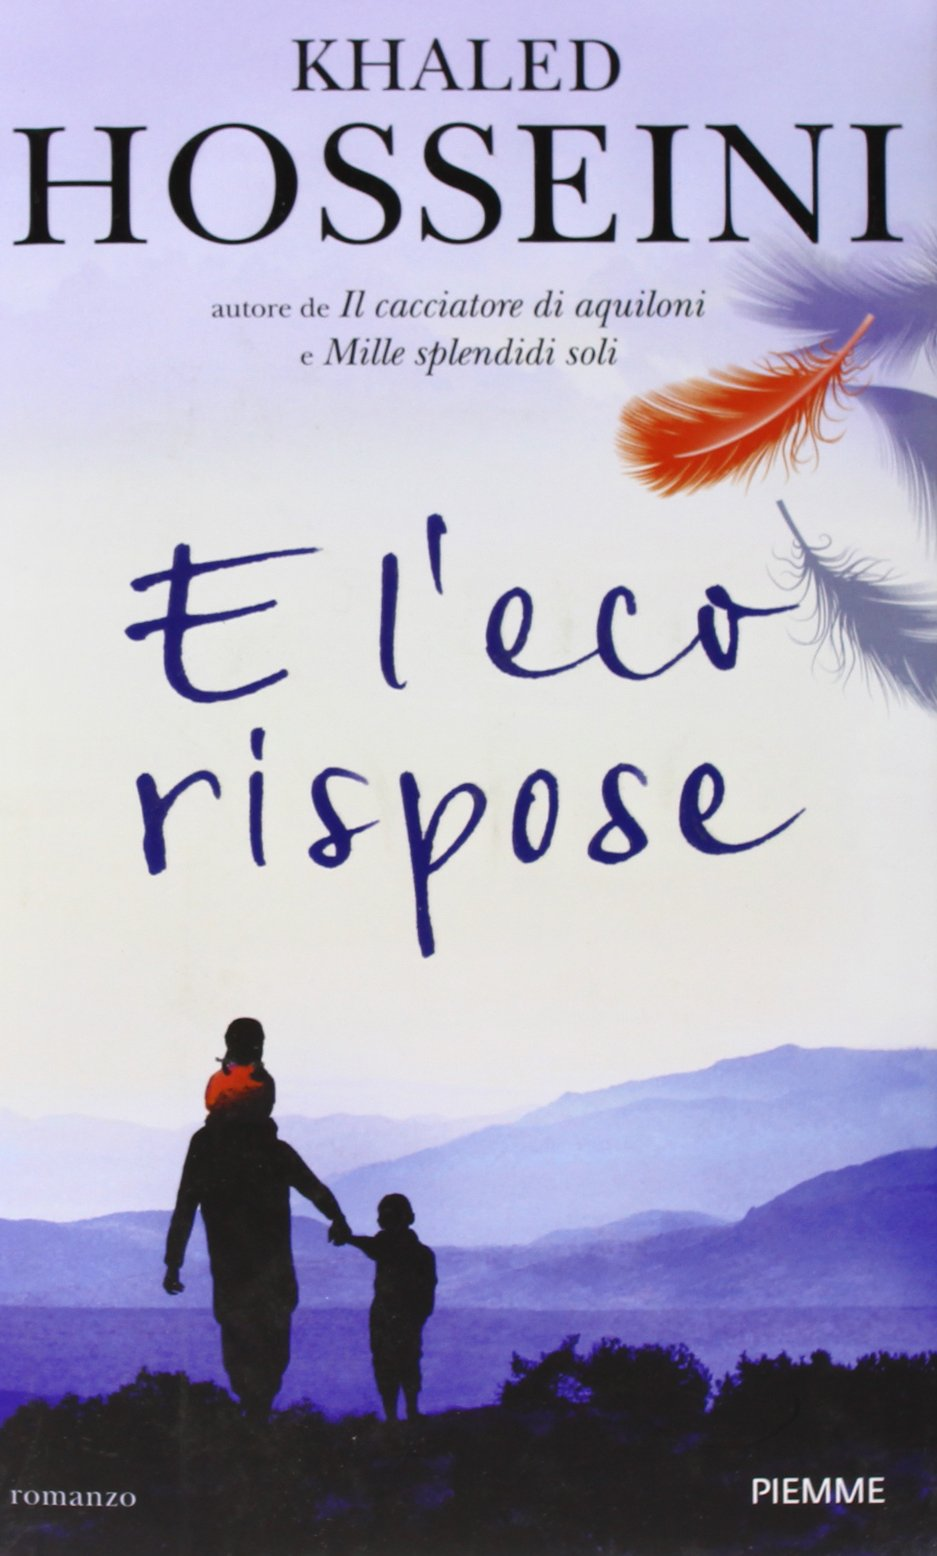 Amazon.it: E l'eco rispose - Hosseini, Khaled, Vaj, I. - Libri